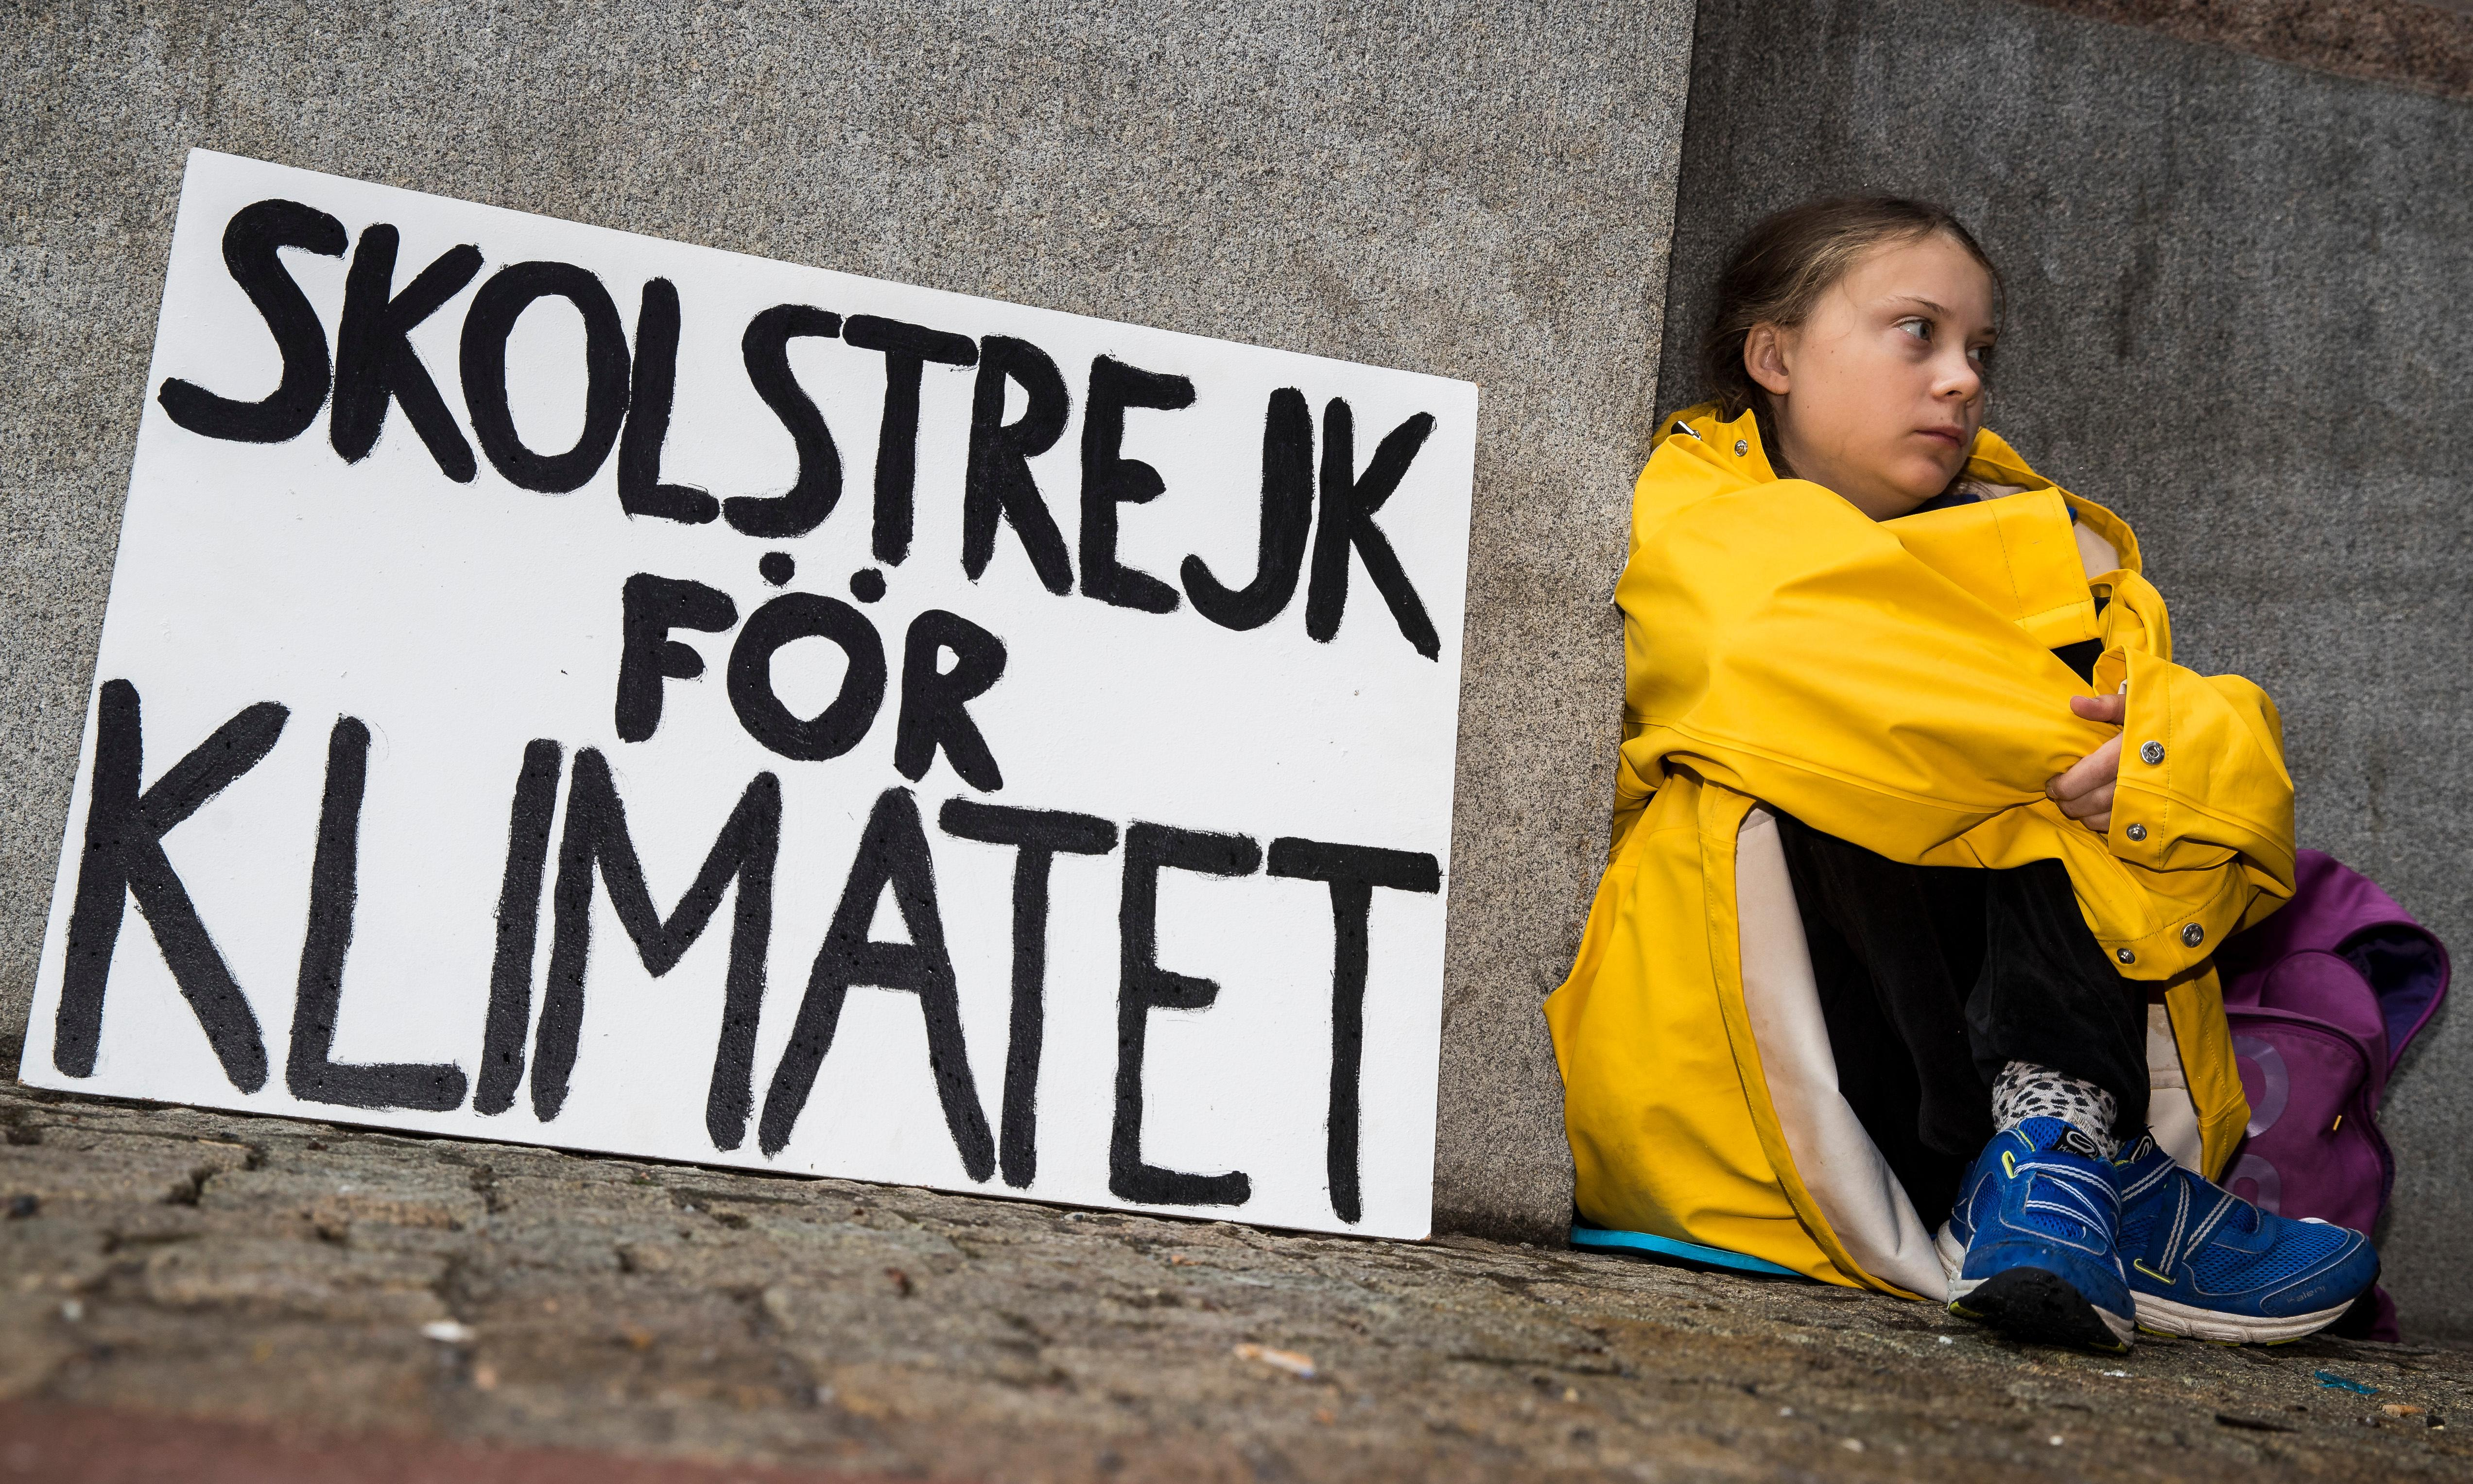 The Swedish 15-year-old who's cutting class to fight the climate crisis